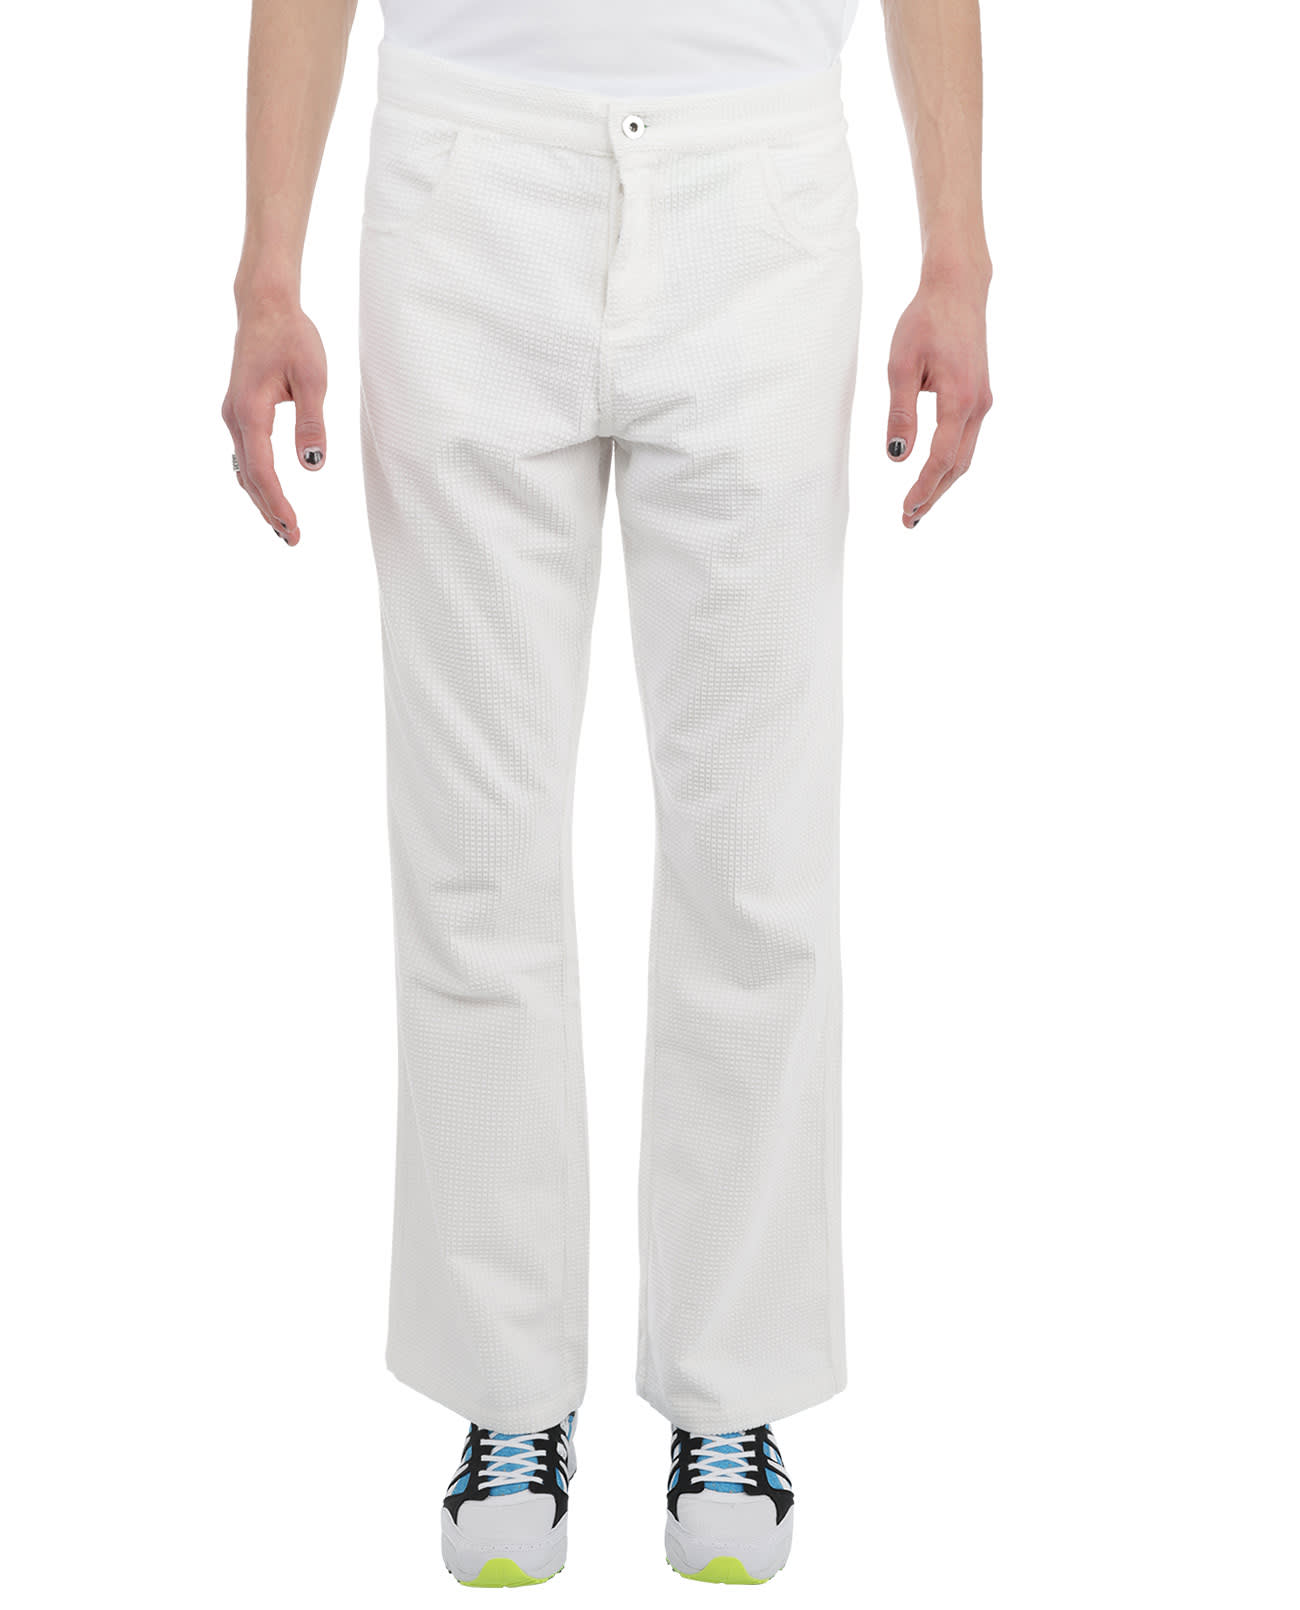 Erl ERL WHITE CORD TROUSERS